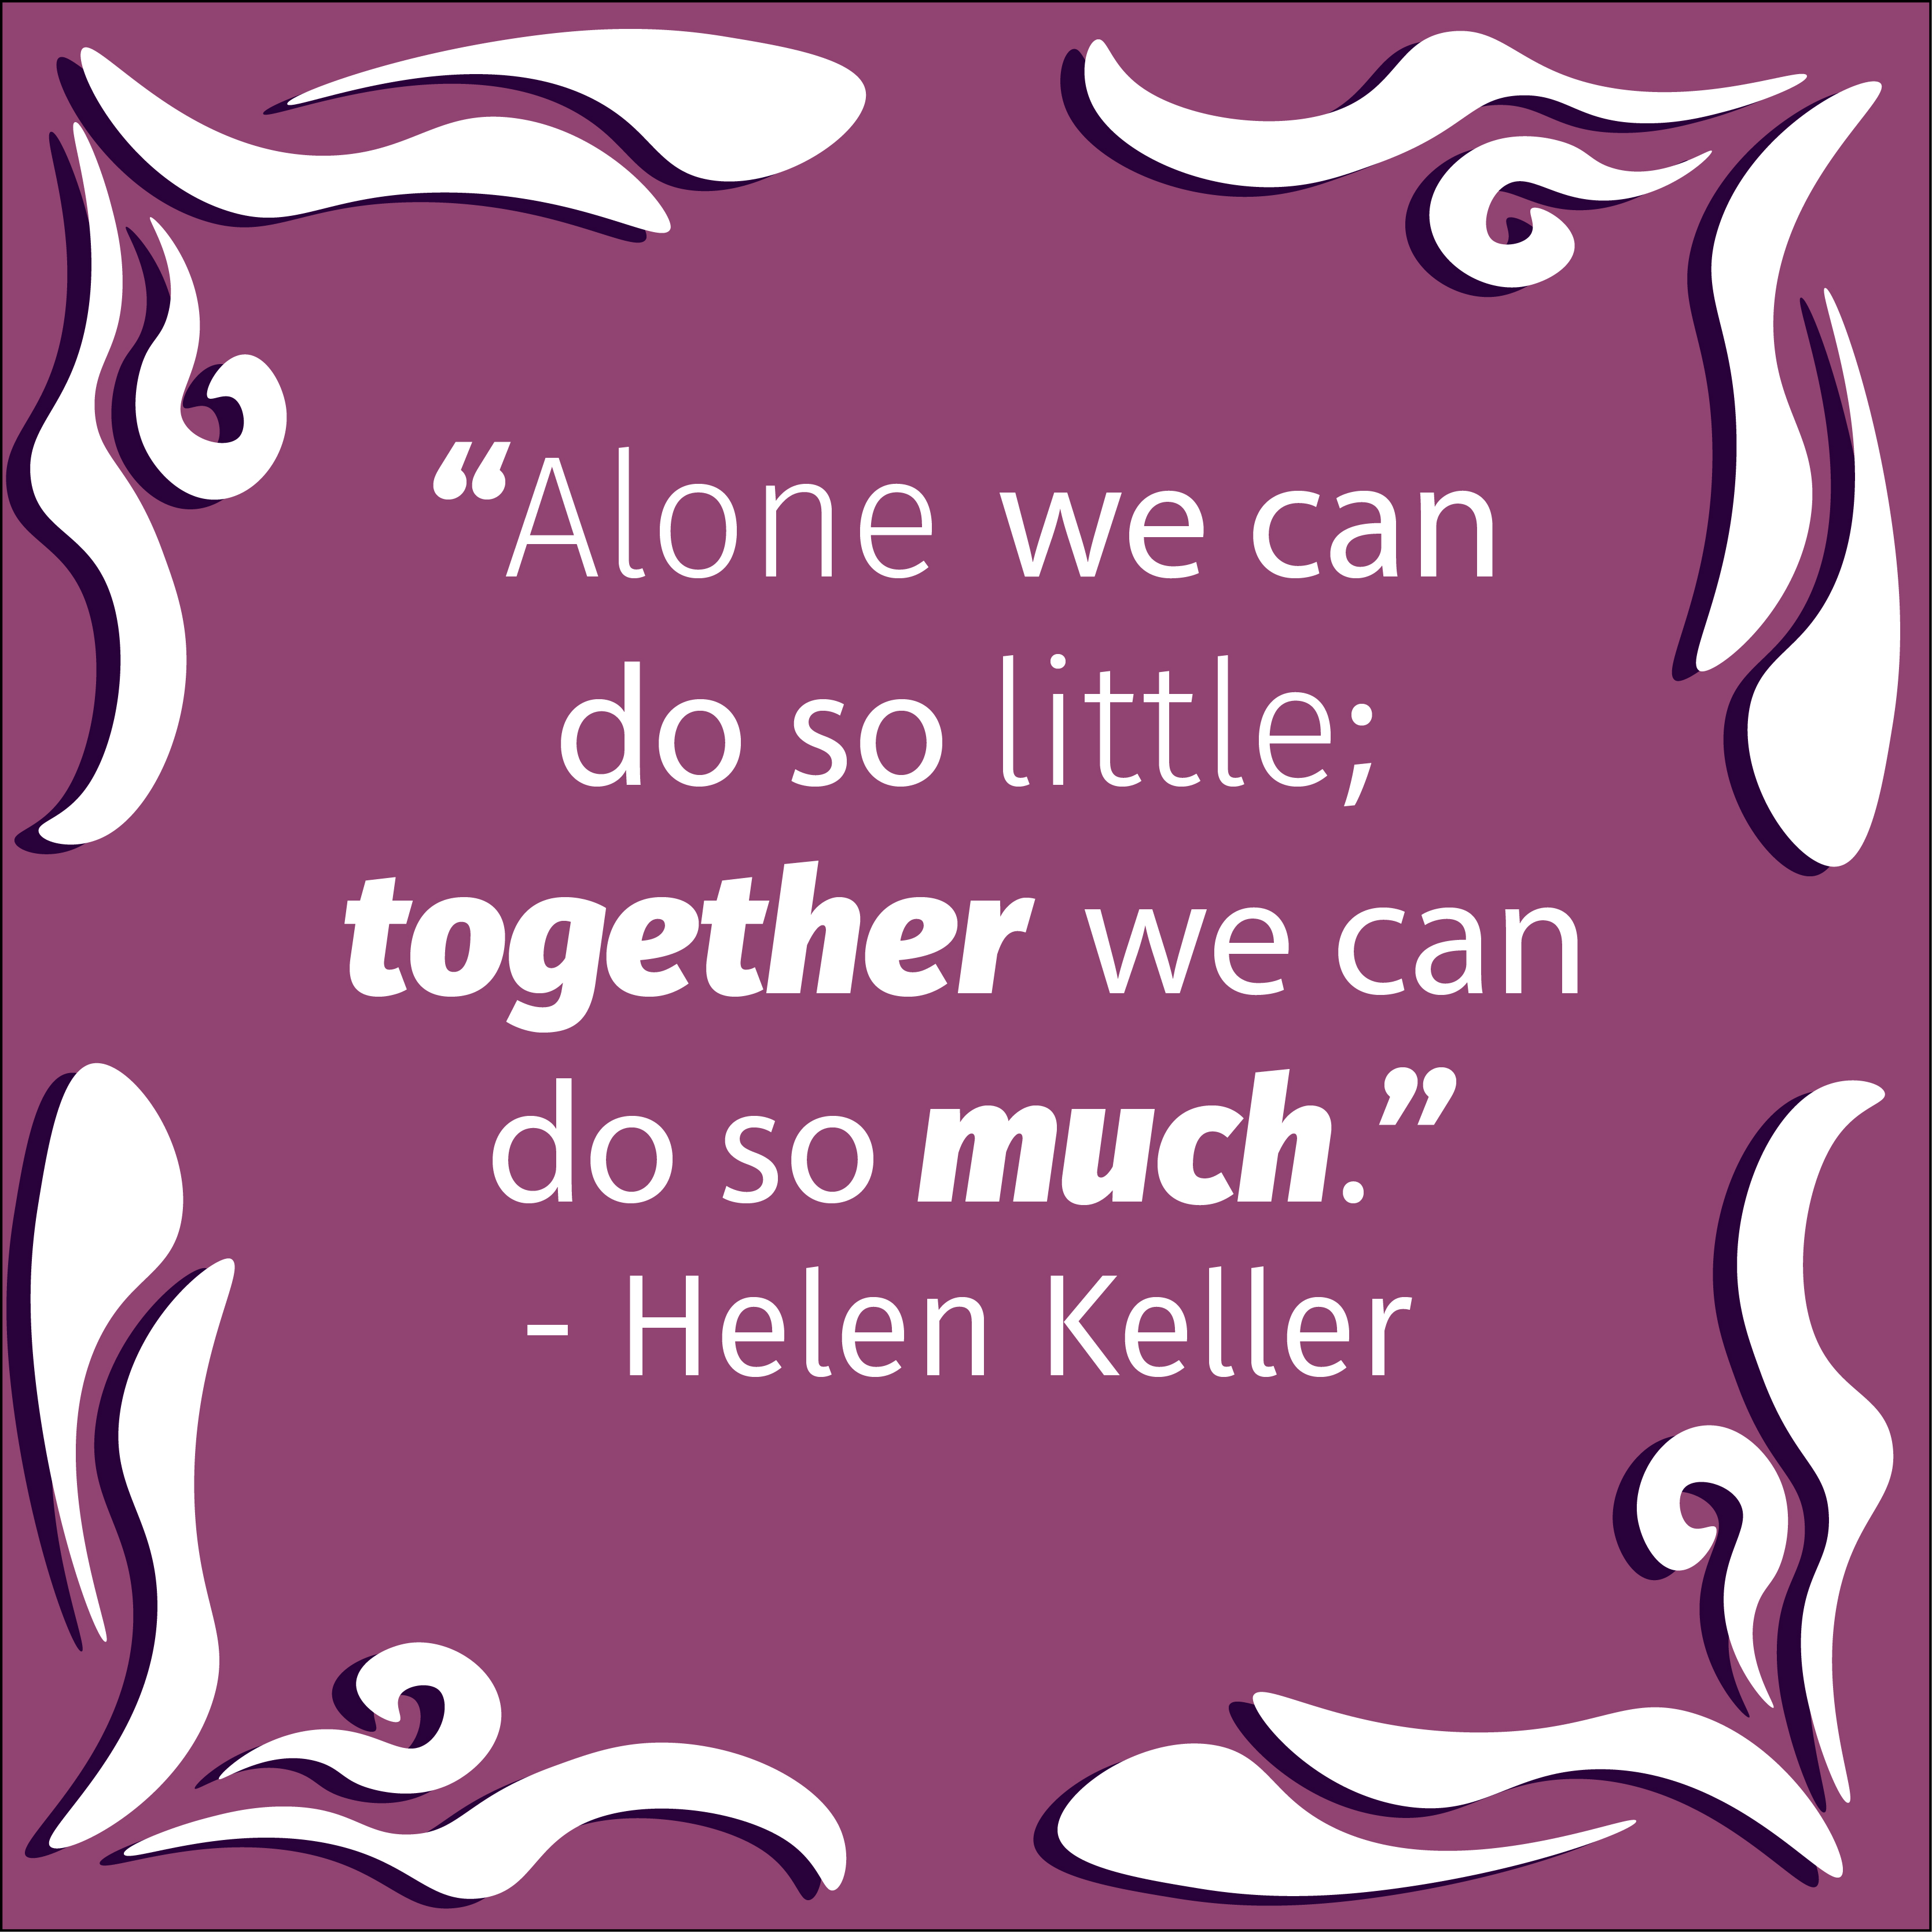 Alone we can do so little together we can do so much. -  Helen Keller